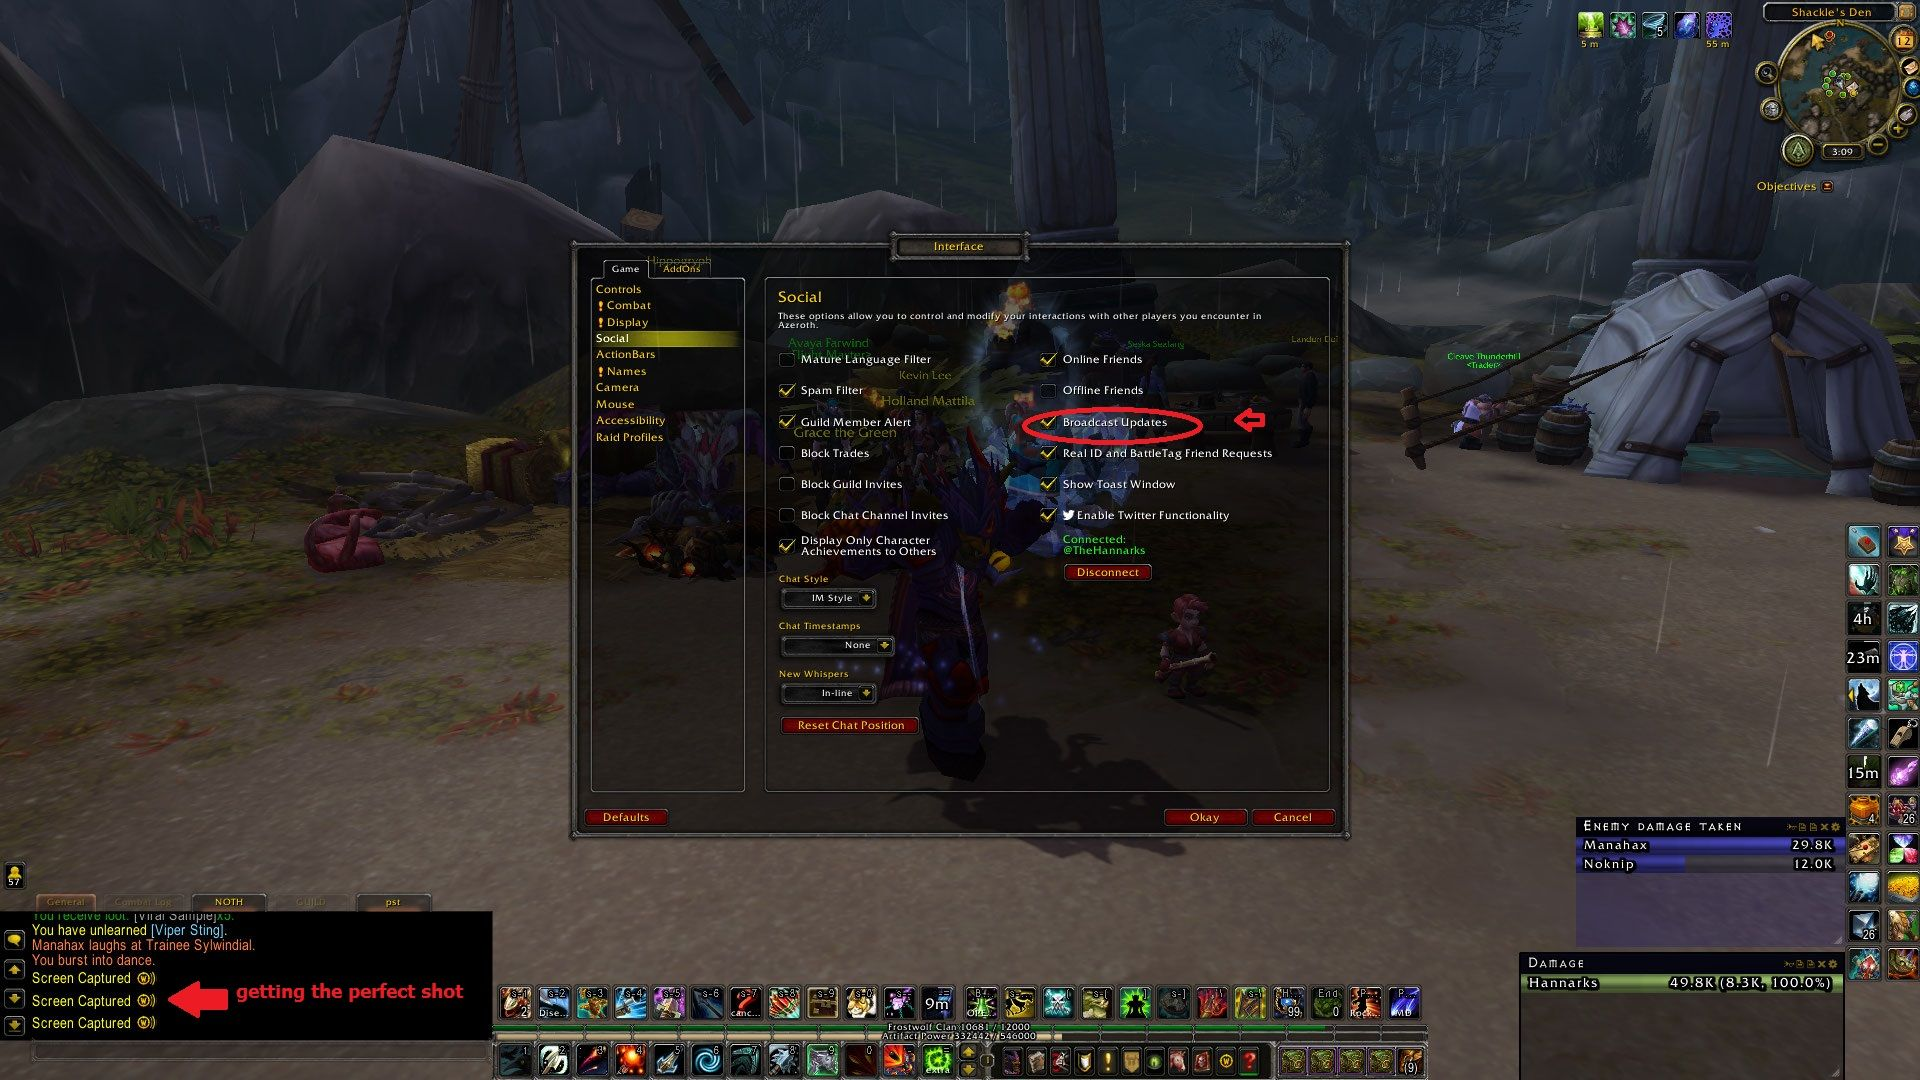 TIL: go to INTERFACE --> SOCIAL --> enable BROADCAST UPDATES. Blizz turned your friends off! RAWR! #worldofwarcraft #blizzard #Hearthstone #wow #Warcraft #BlizzardCS #gaming